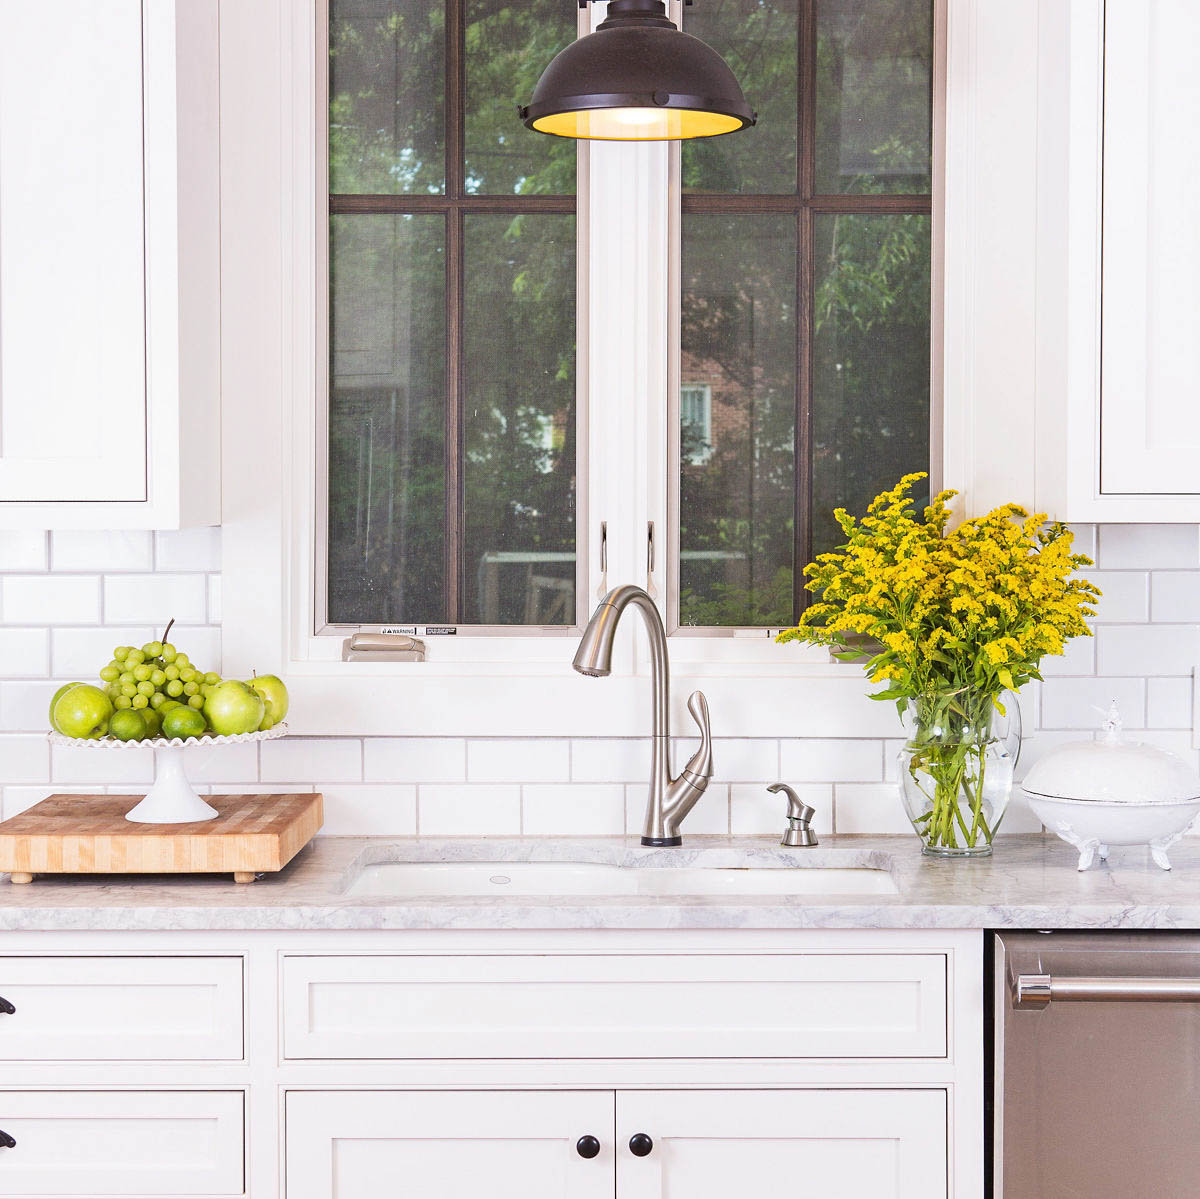 Bright white, clean kitchen, with green apples and vase of yellow flowers on the counter